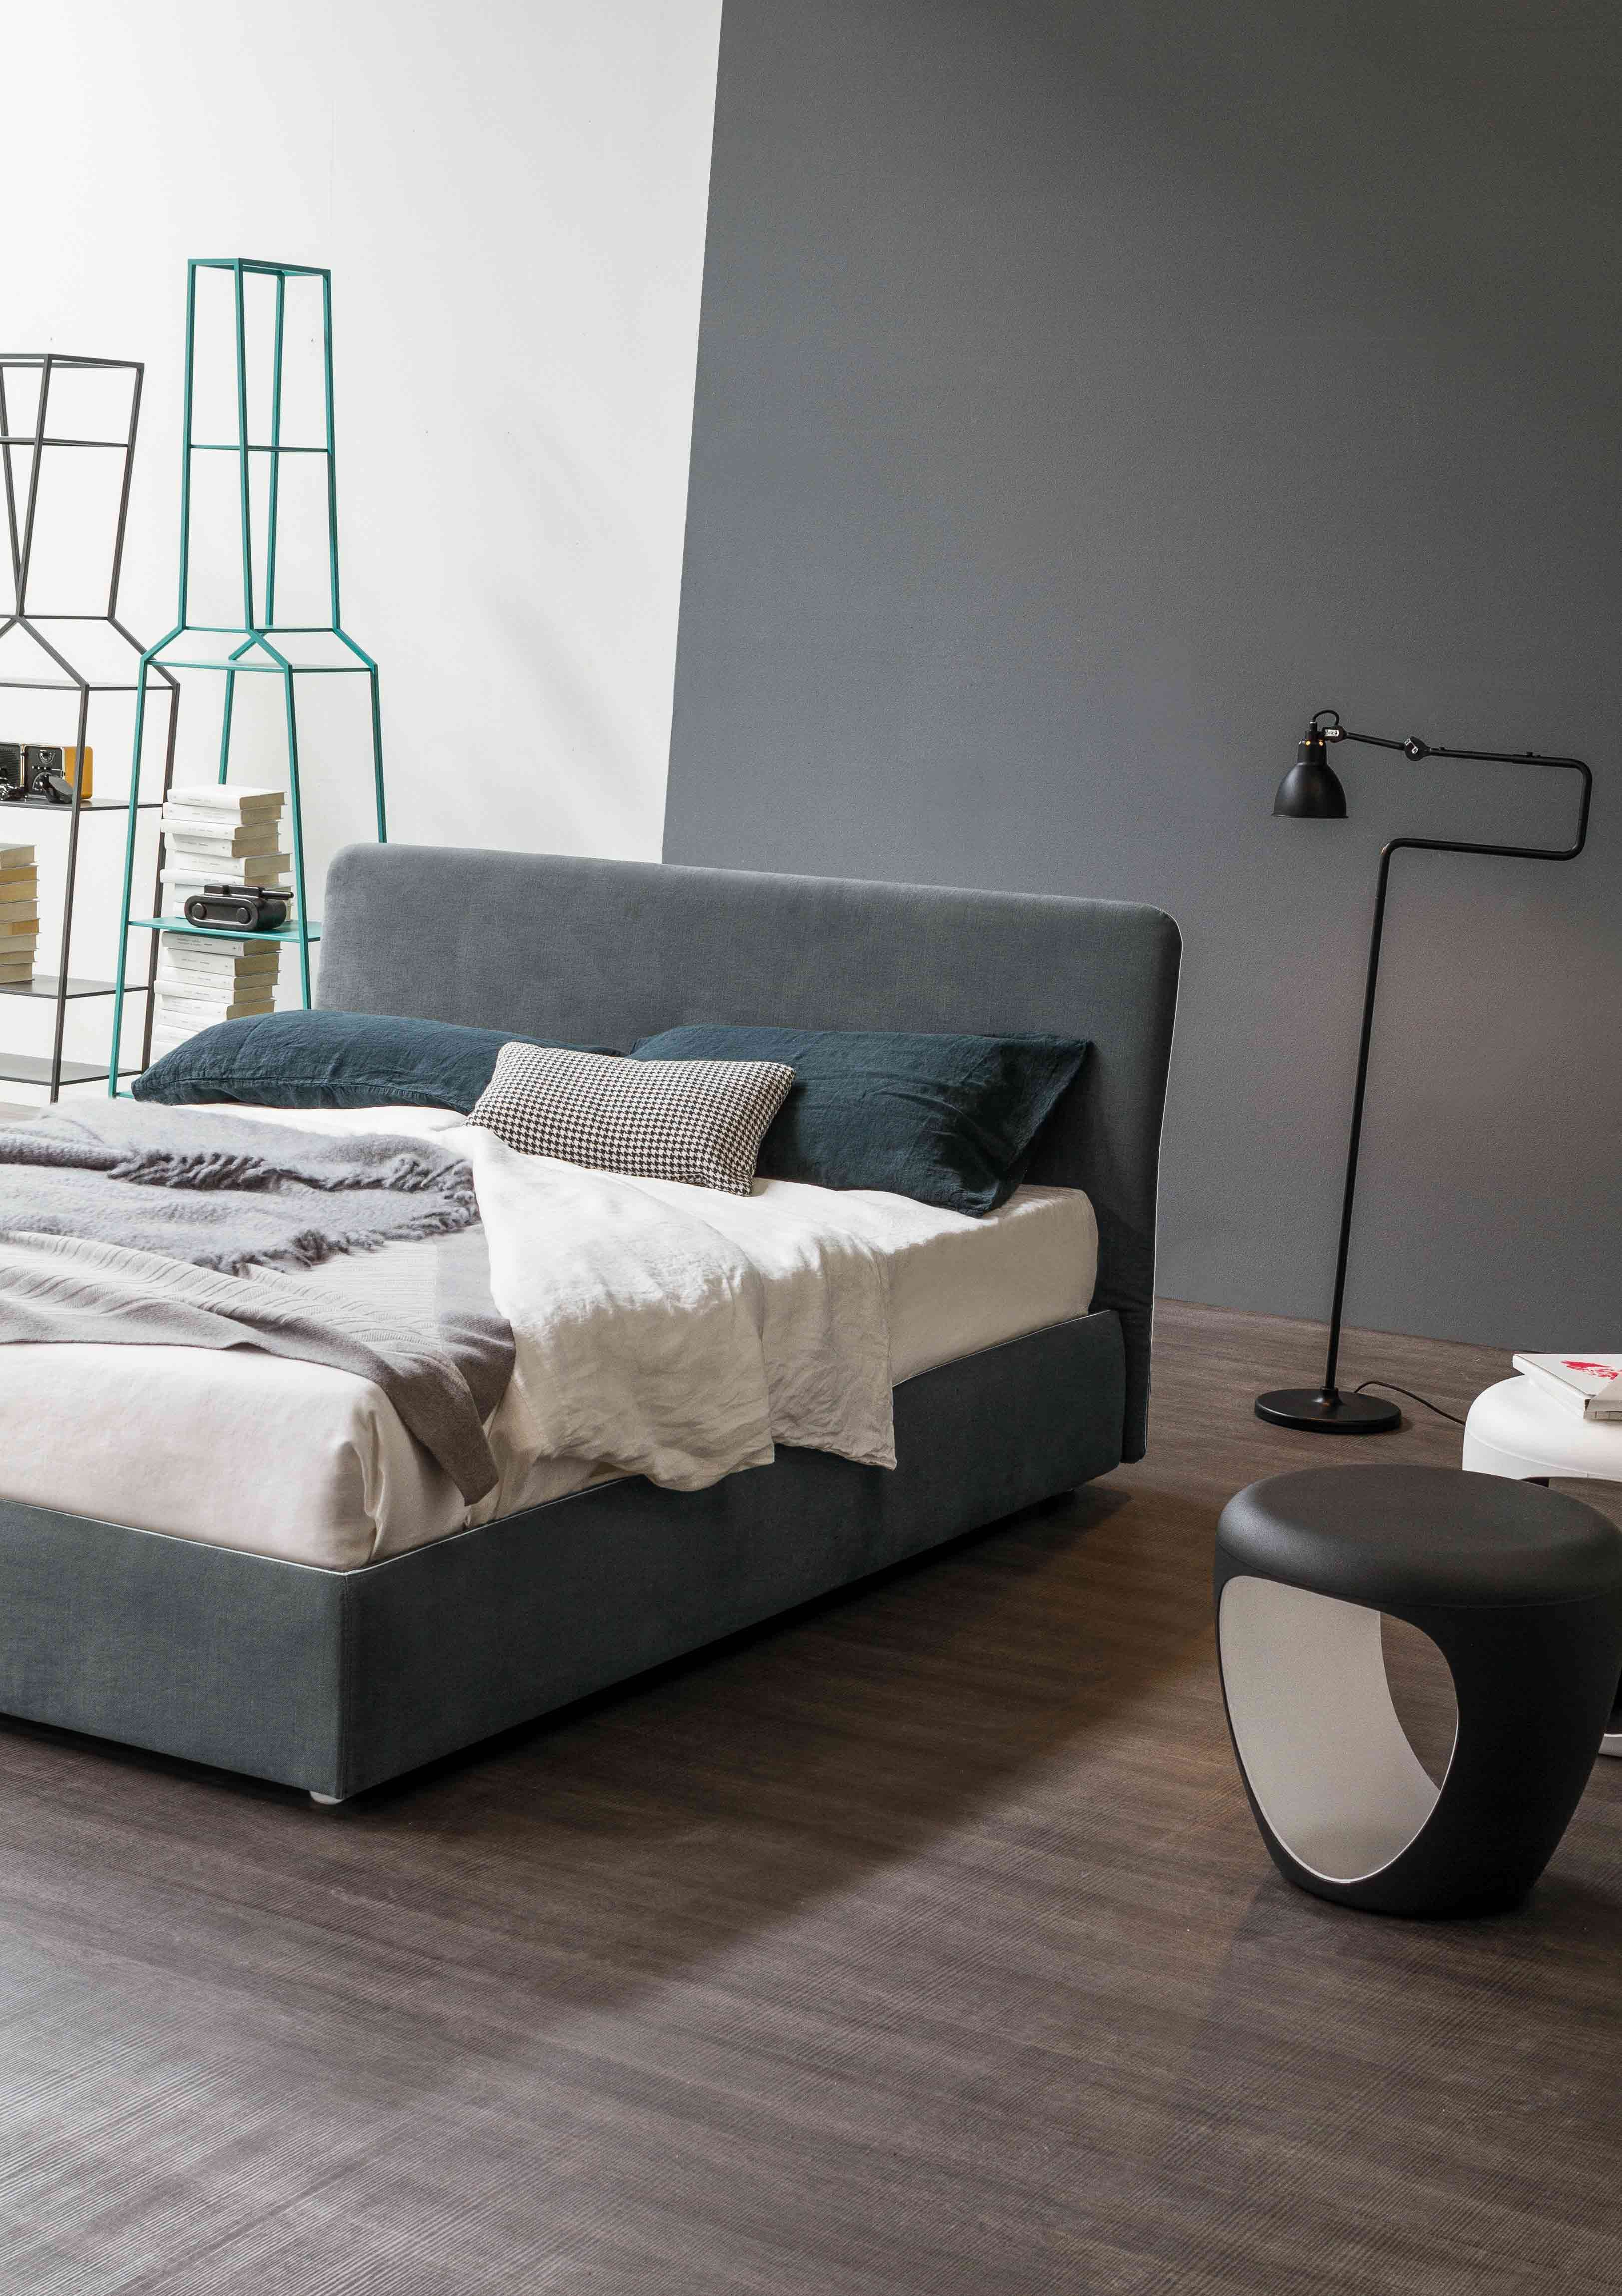 true bed design by bonaldo httpsuiteca  products we  - true bed design by bonaldo httpsuiteca